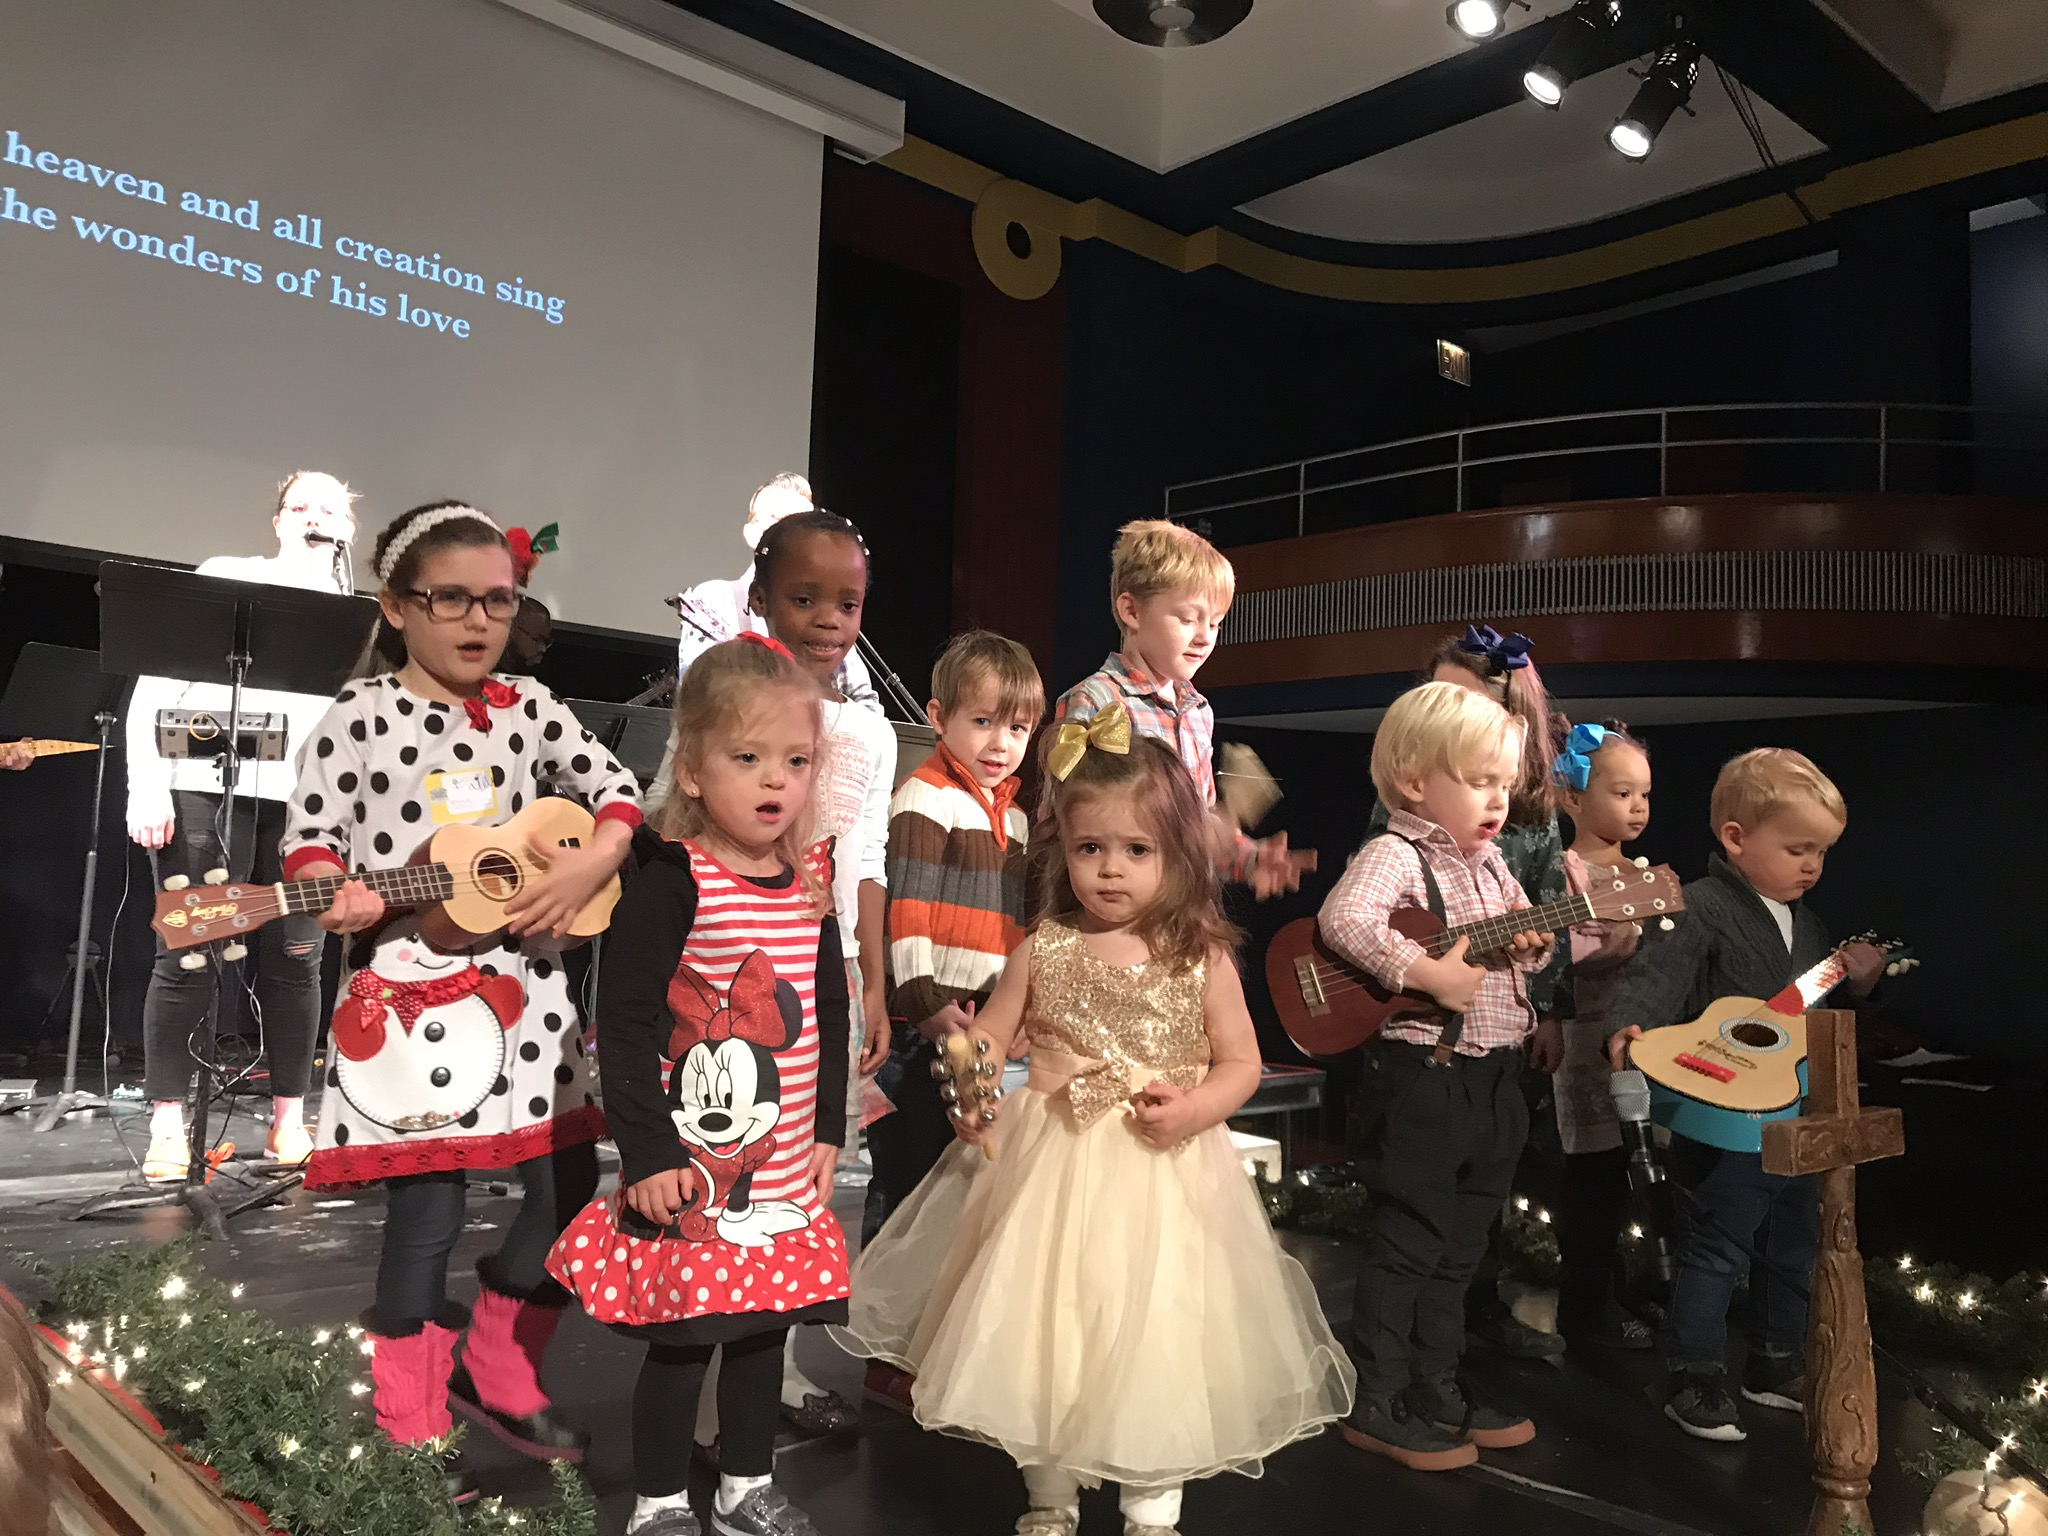 The kids sang at church that Sunday. Lucie and her bestie, Elle weren't the biggest fans of having to perform, even though they both love the song and still sing it.